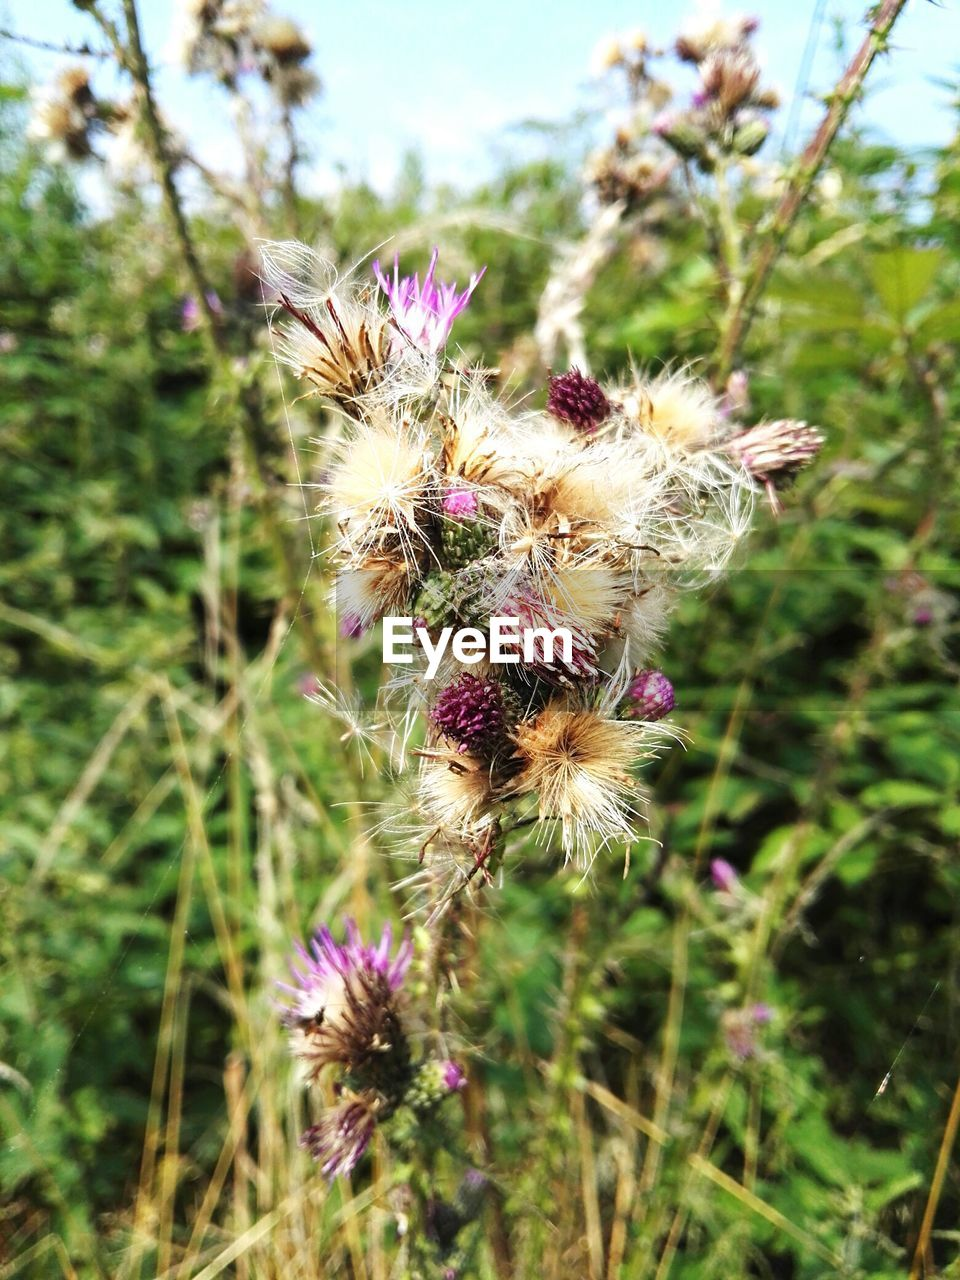 flower, nature, fragility, plant, growth, focus on foreground, day, beauty in nature, flower head, petal, purple, insect, wildflower, outdoors, no people, close-up, one animal, thistle, uncultivated, freshness, pink color, animal themes, animals in the wild, pollination, blooming